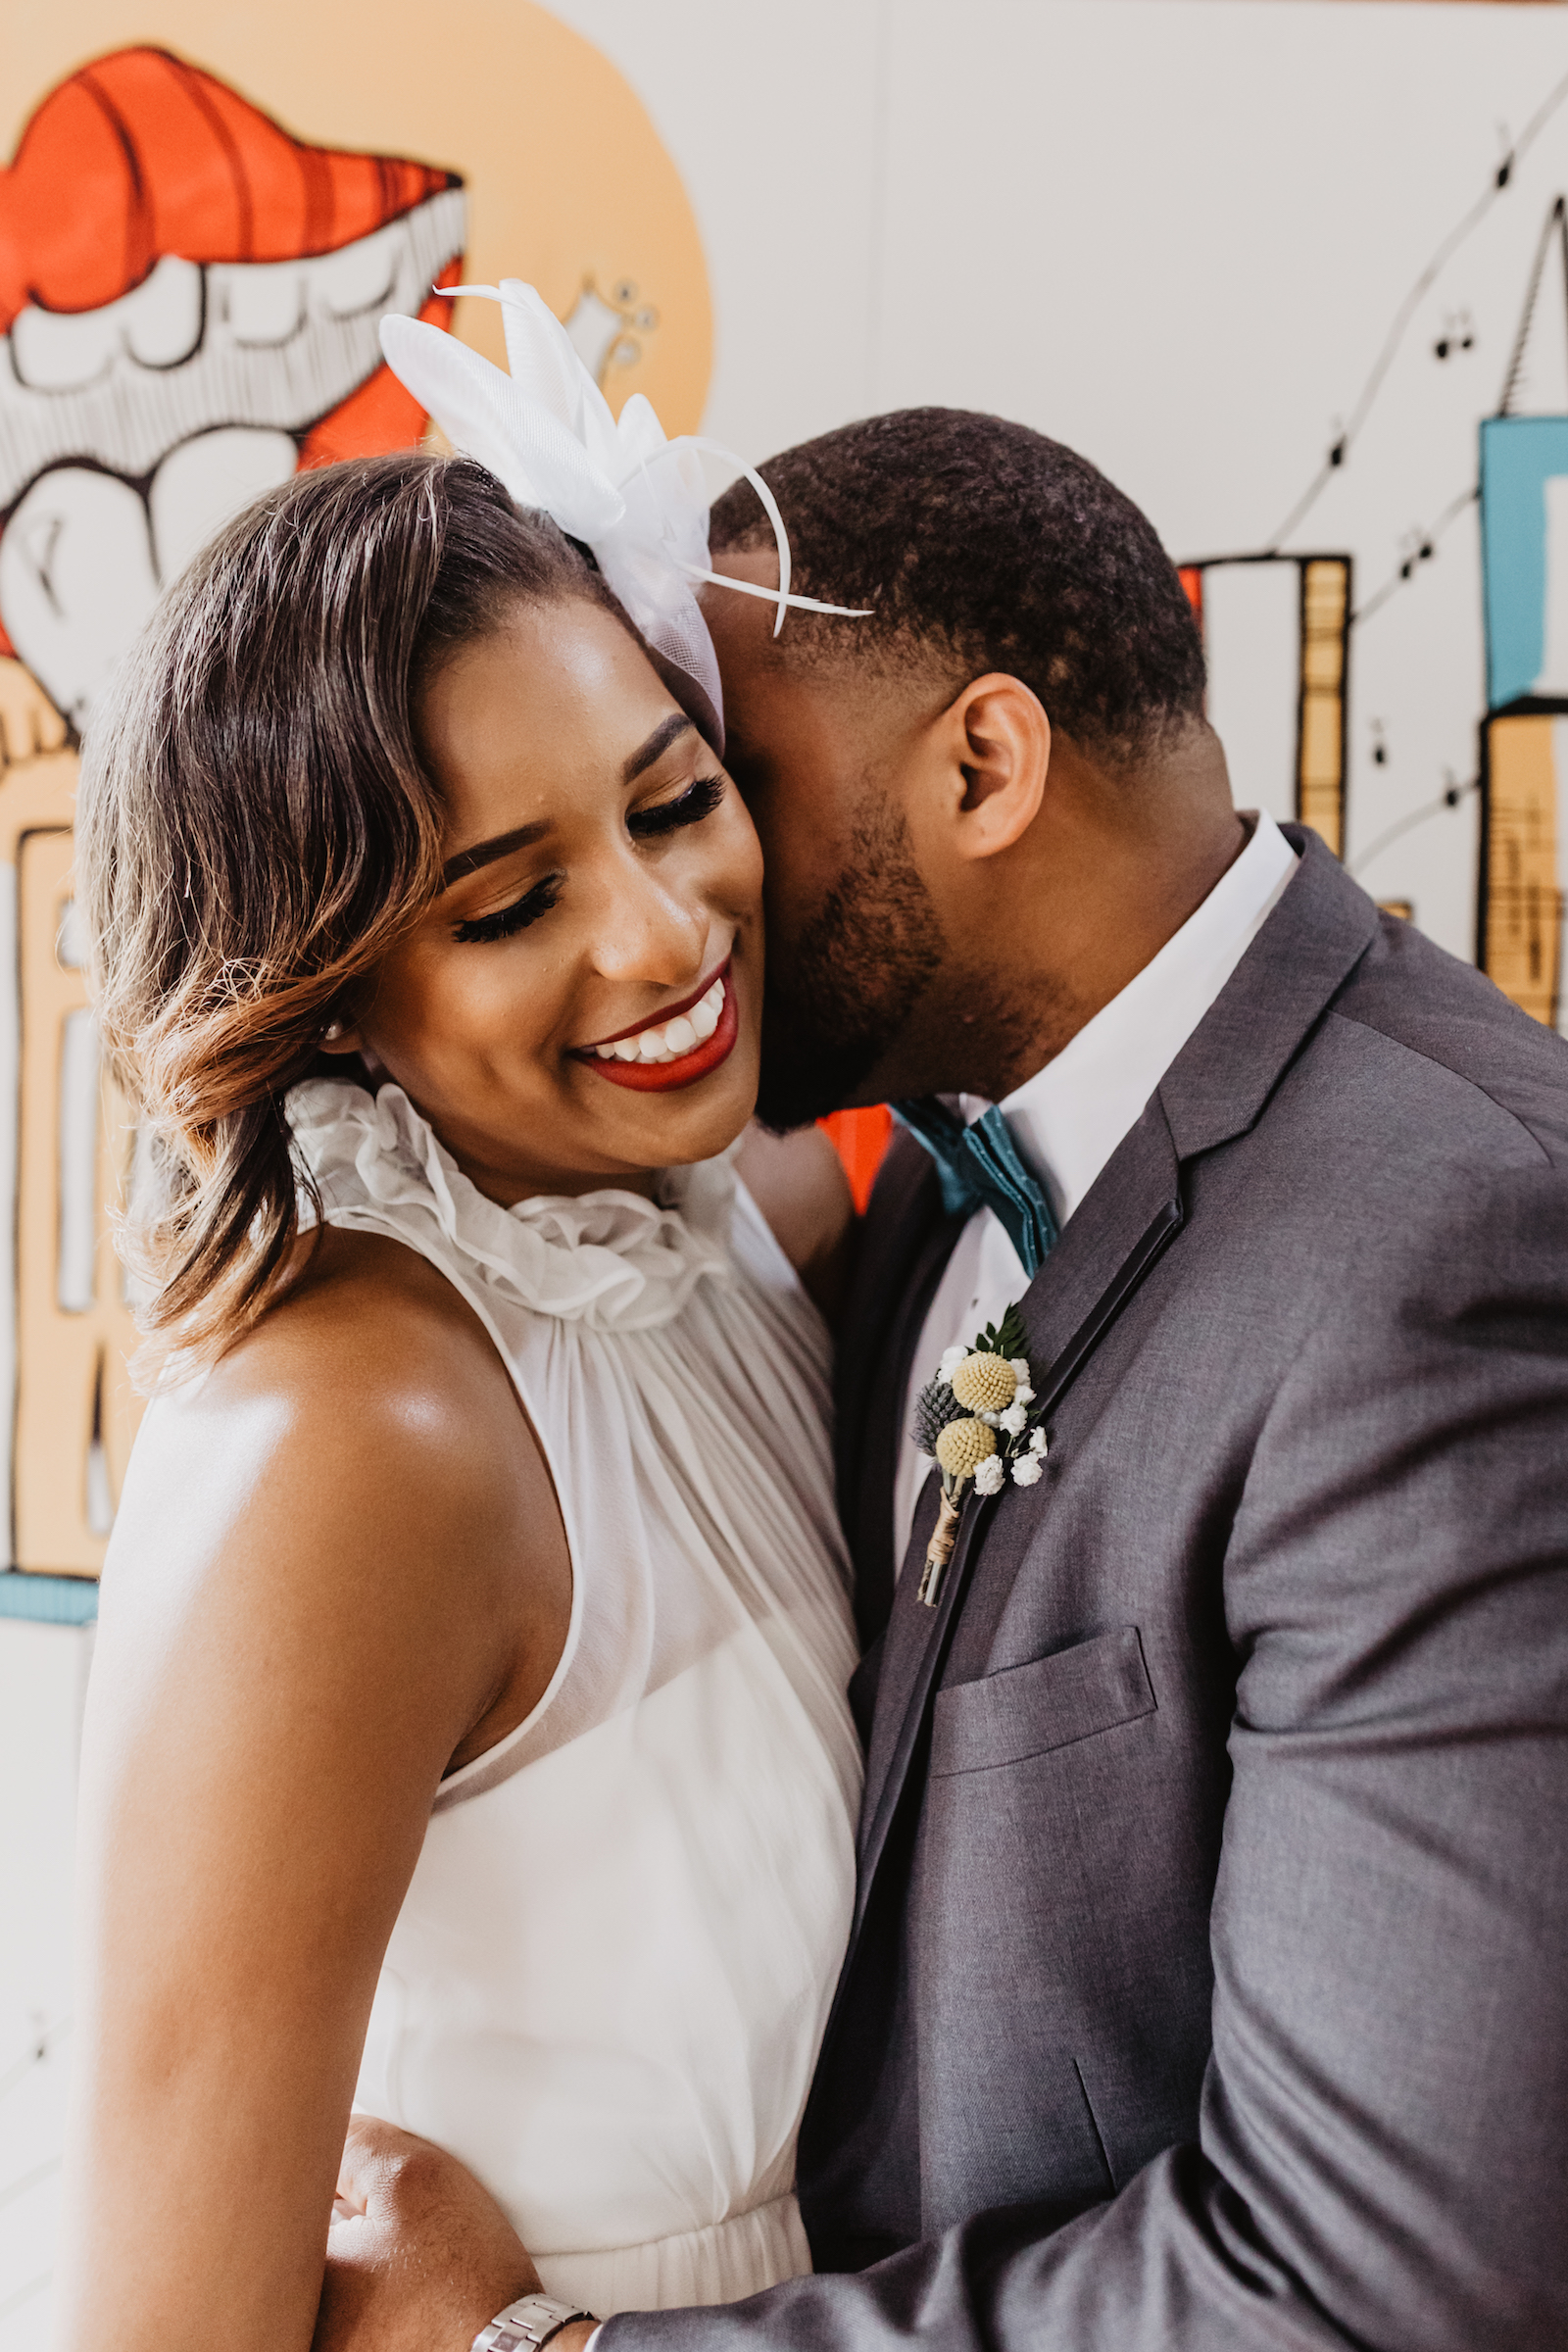 Nashville wedding photography: Music City Merger Styled Shoot featured on Nashville Bride Guide